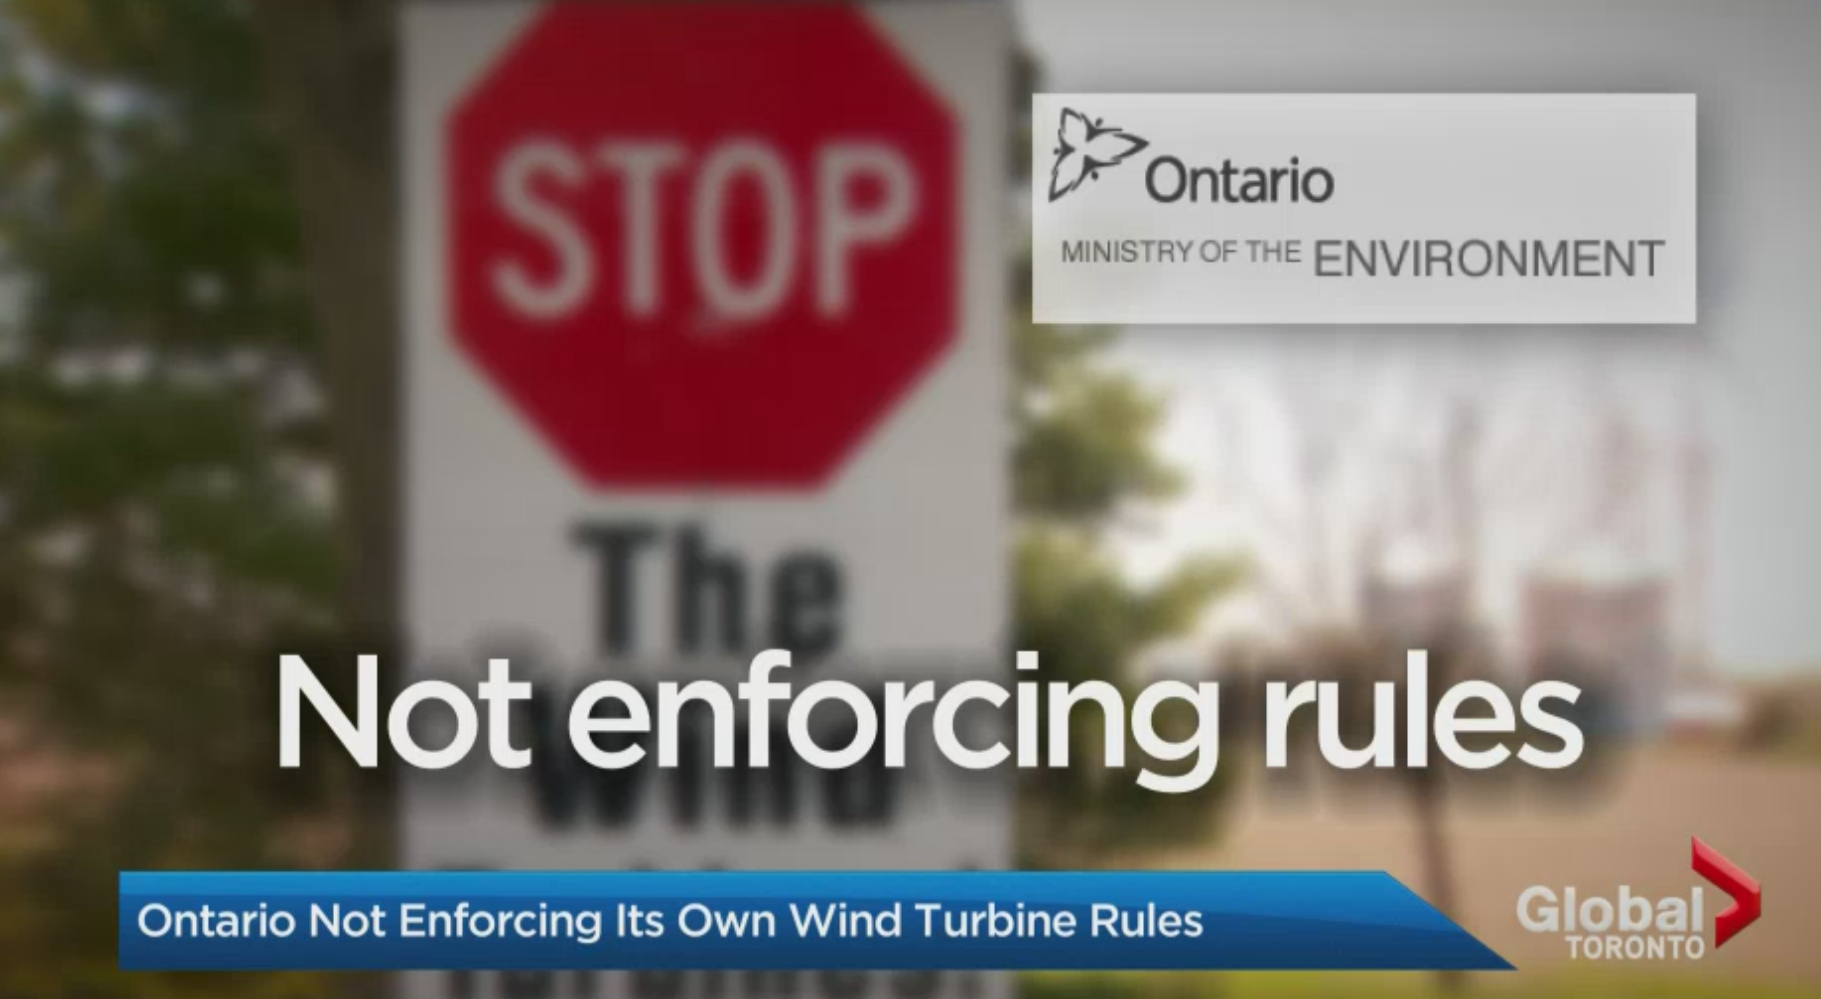 Global Toronto Wind Energy Exposed